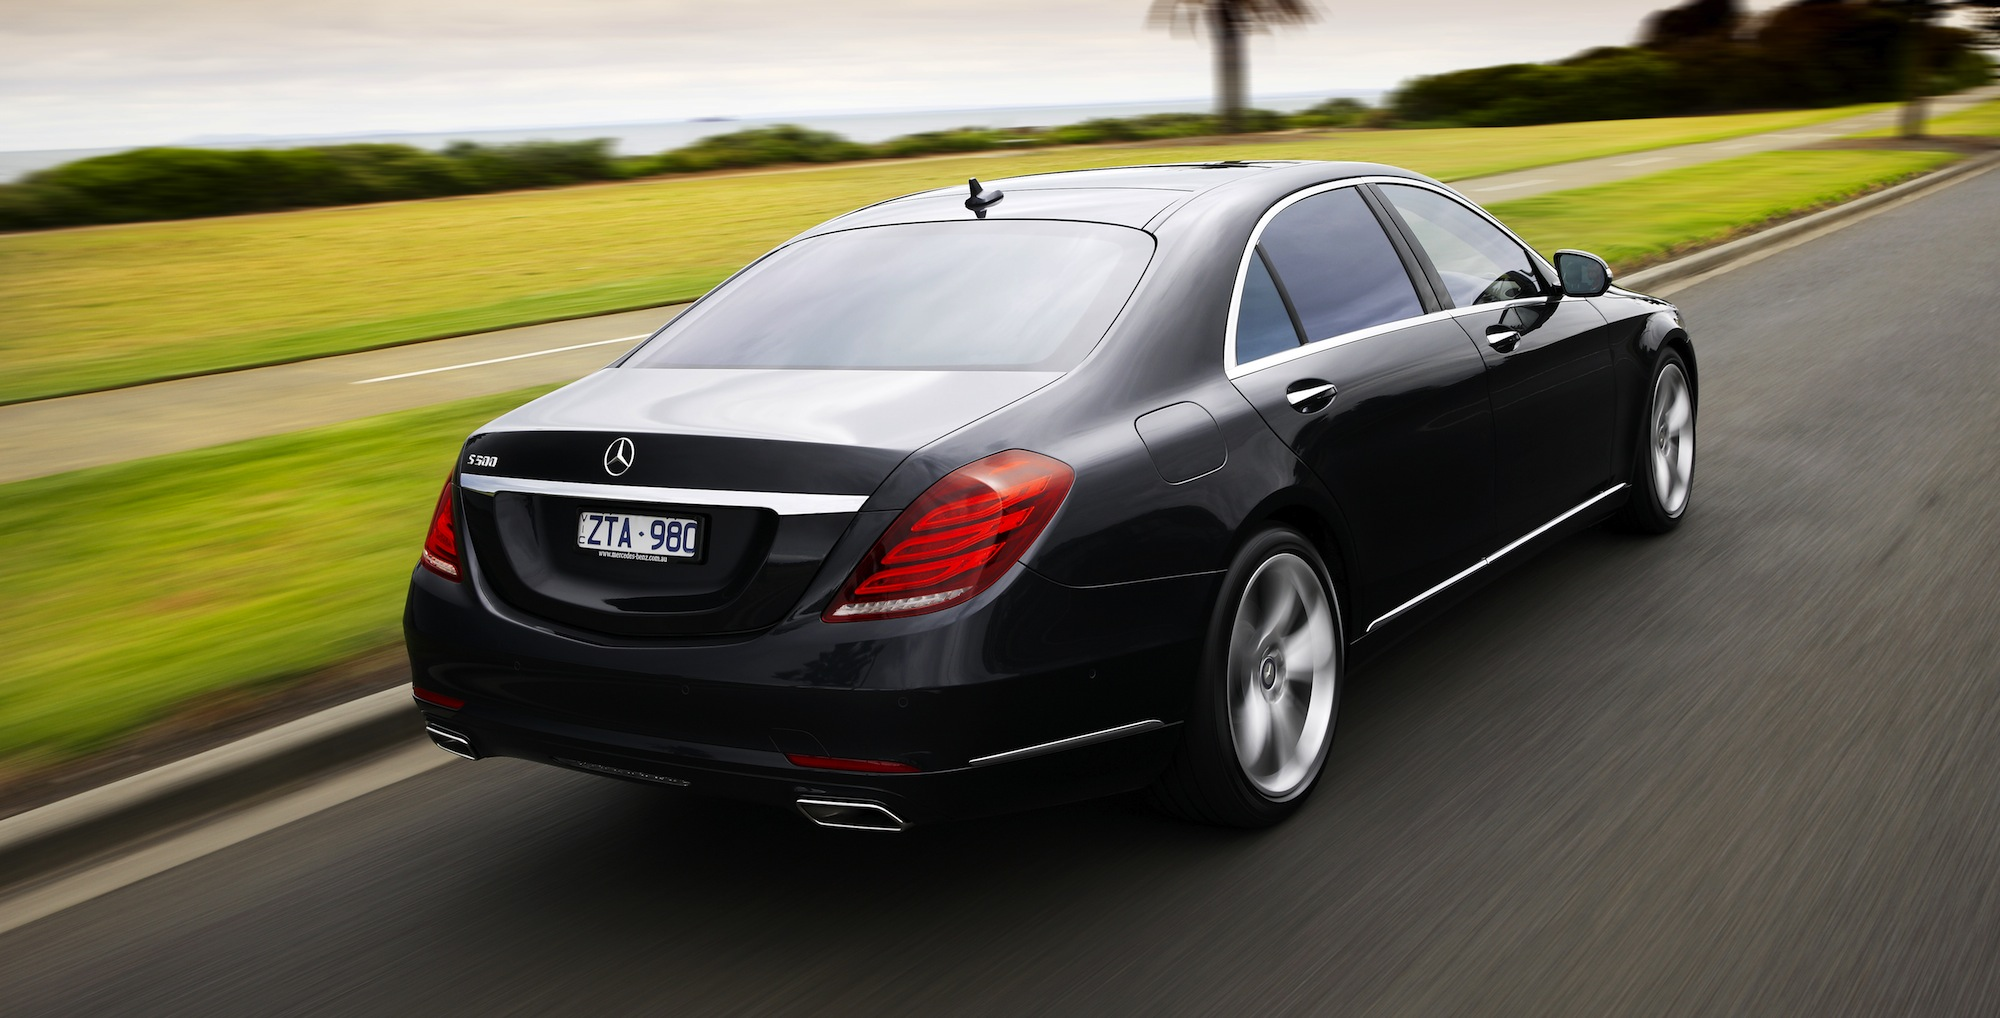 Mercedes benz used cars for sale in south africa html for Mercedes benz used vehicles